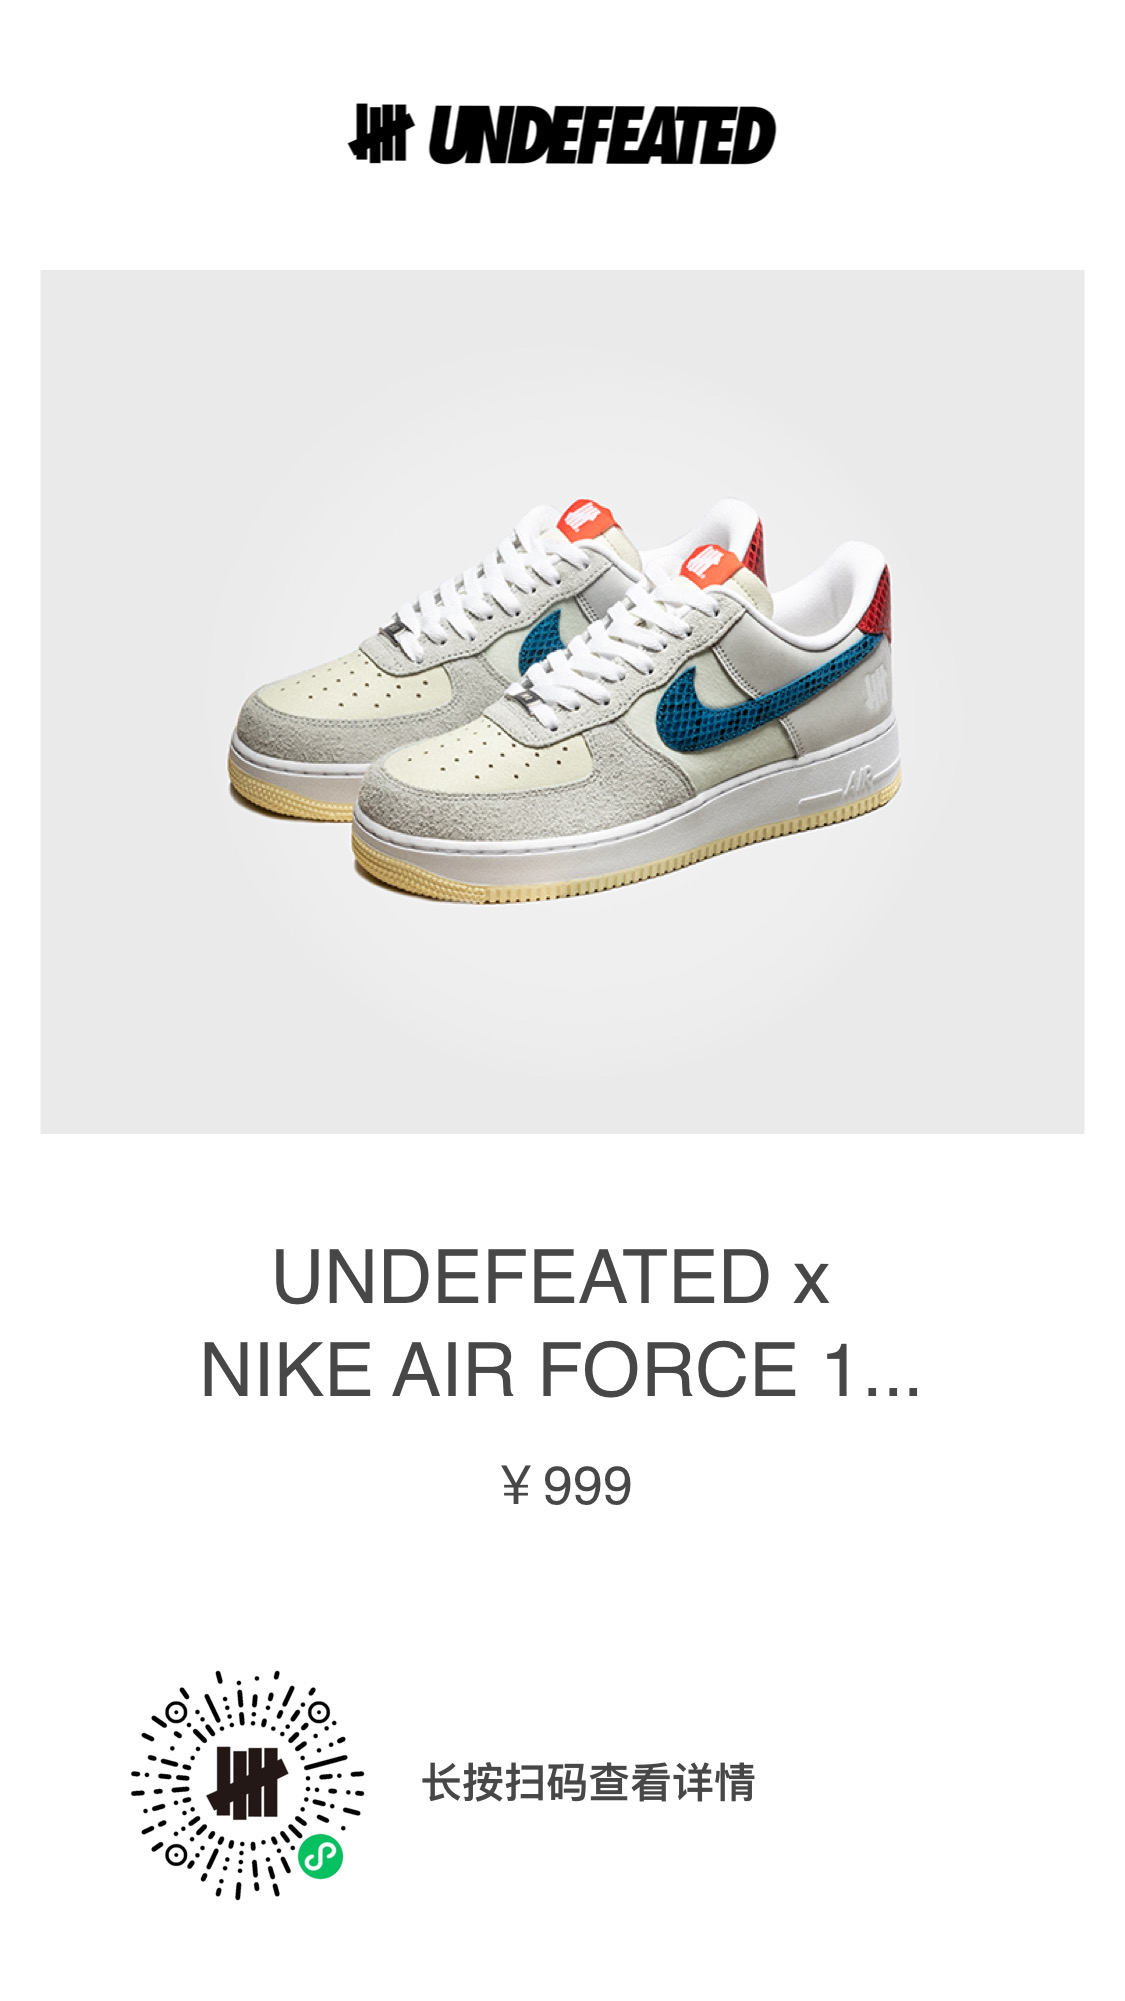 UNDEFEATED,Nike,DUNK vs AF1,5  速登记!国内 UNDEFEATED x Nike 发售信息曝光!